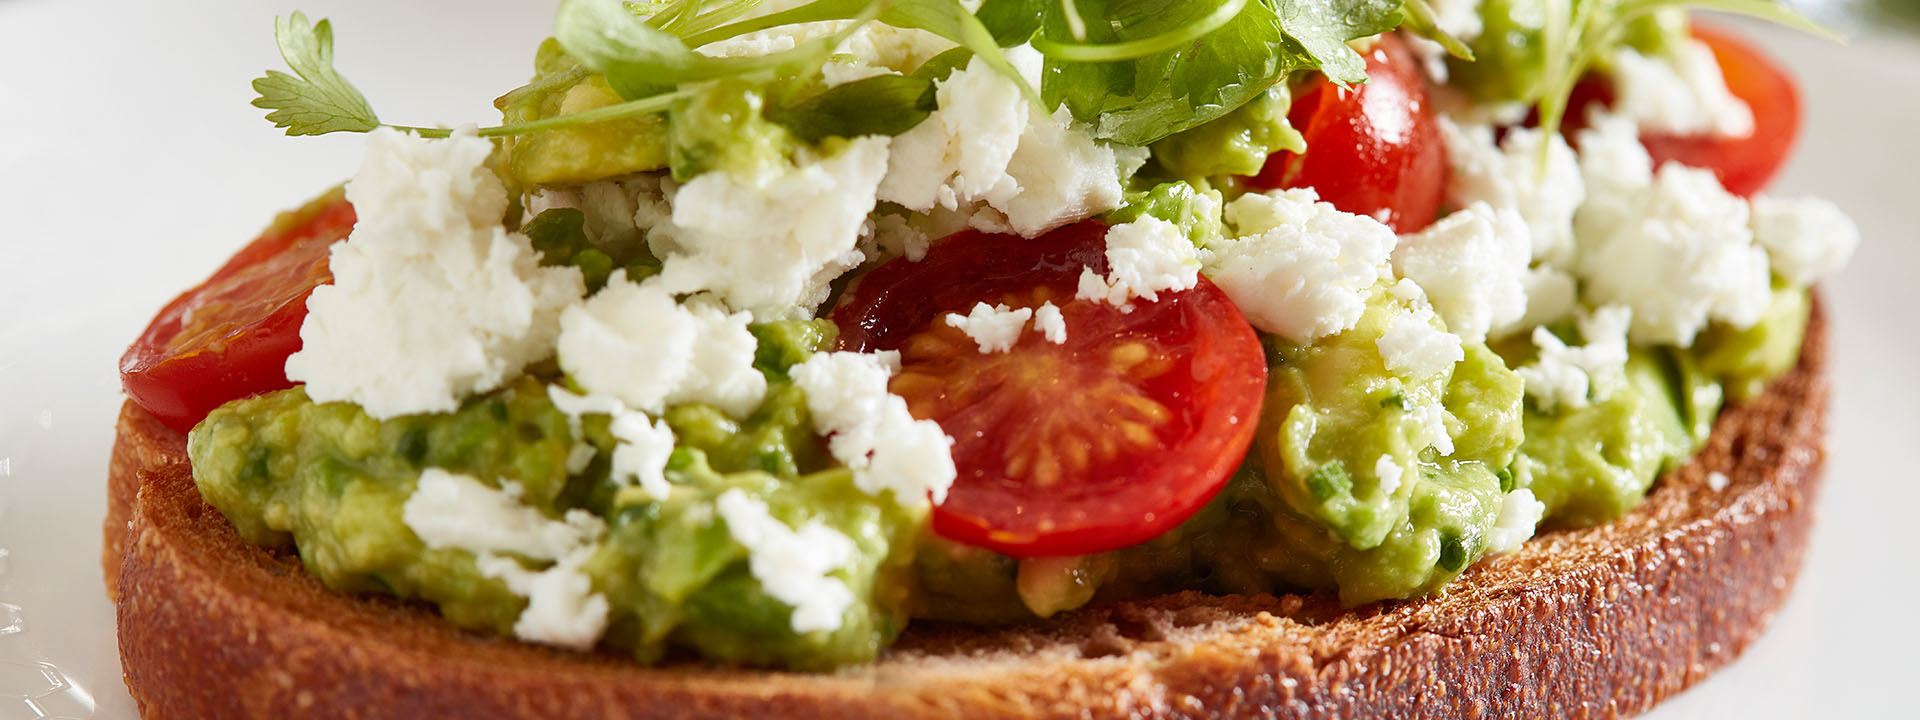 Avocado toast with tomatoes, rocket and feta cheese for breakfast at The Berkeley